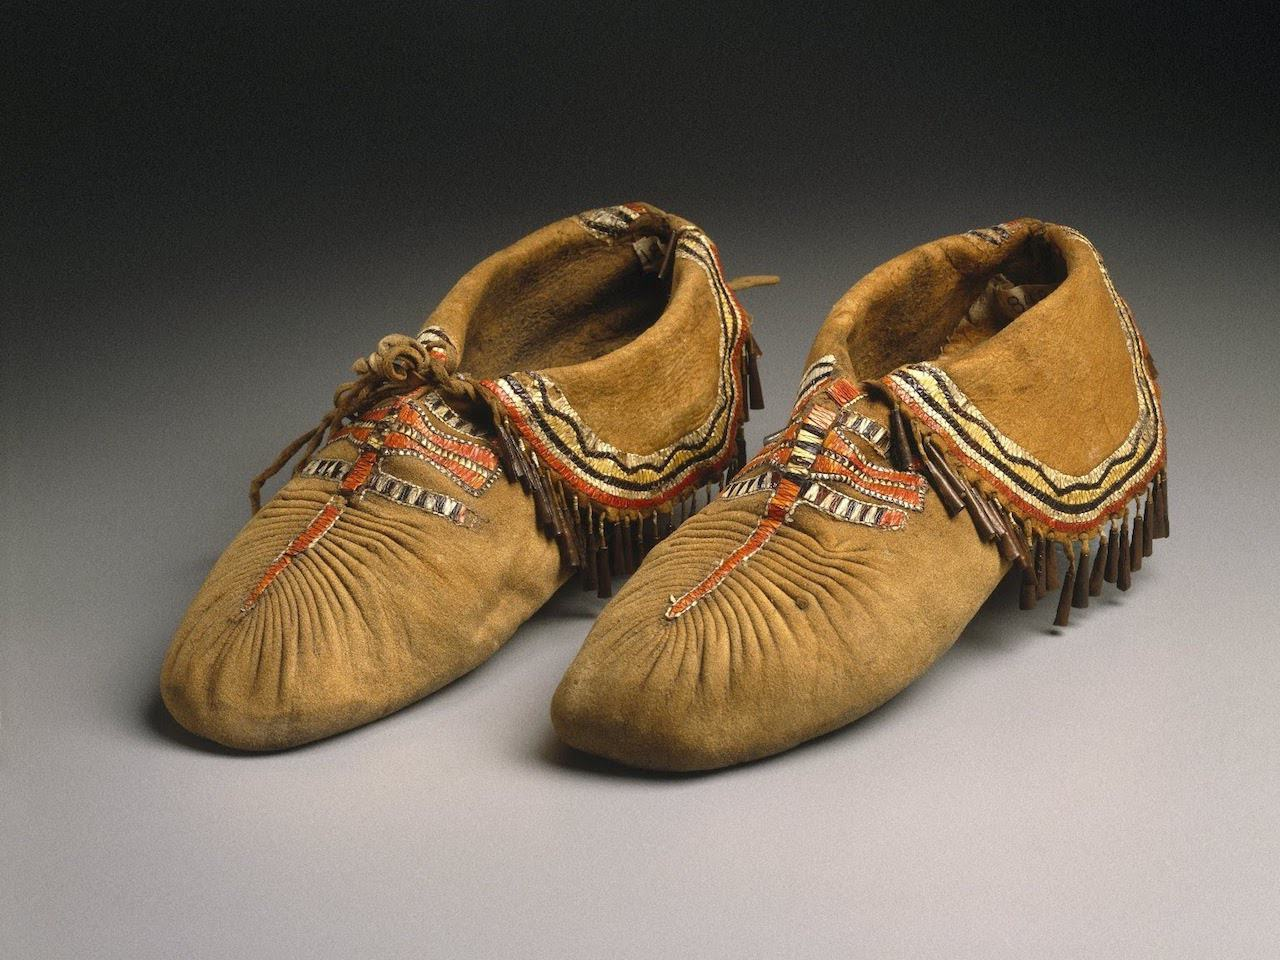 close-up image of 2 moccasins